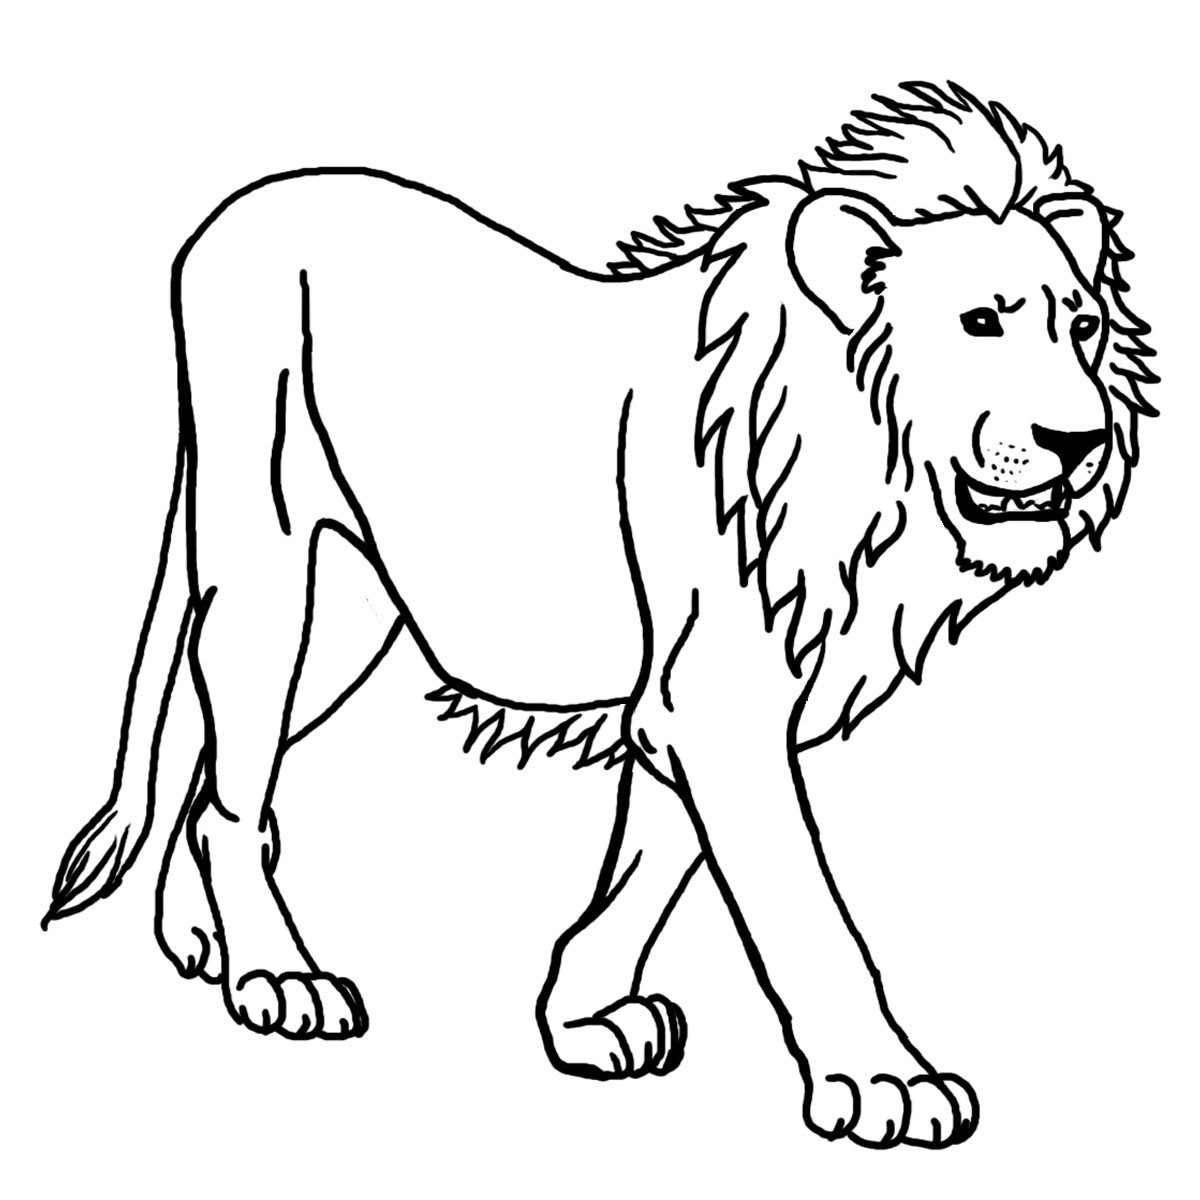 Outline Of A Lion Clip Art Cartoon Animal Faces Lion B&w